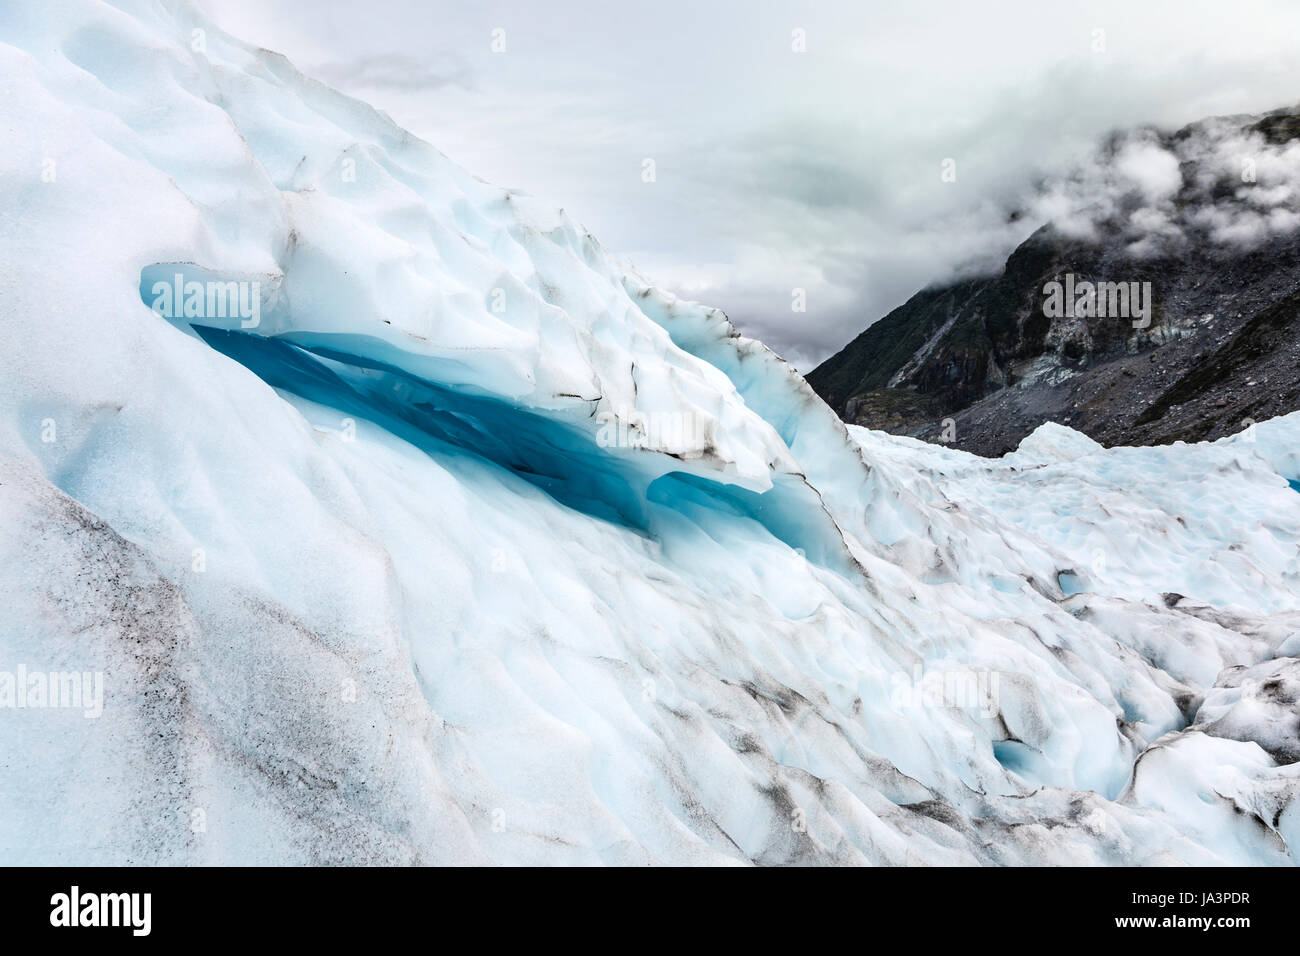 Blue horizontal fissure crevasse in the ice of a glacier, Fox Glacier, New Zealand - Stock Image